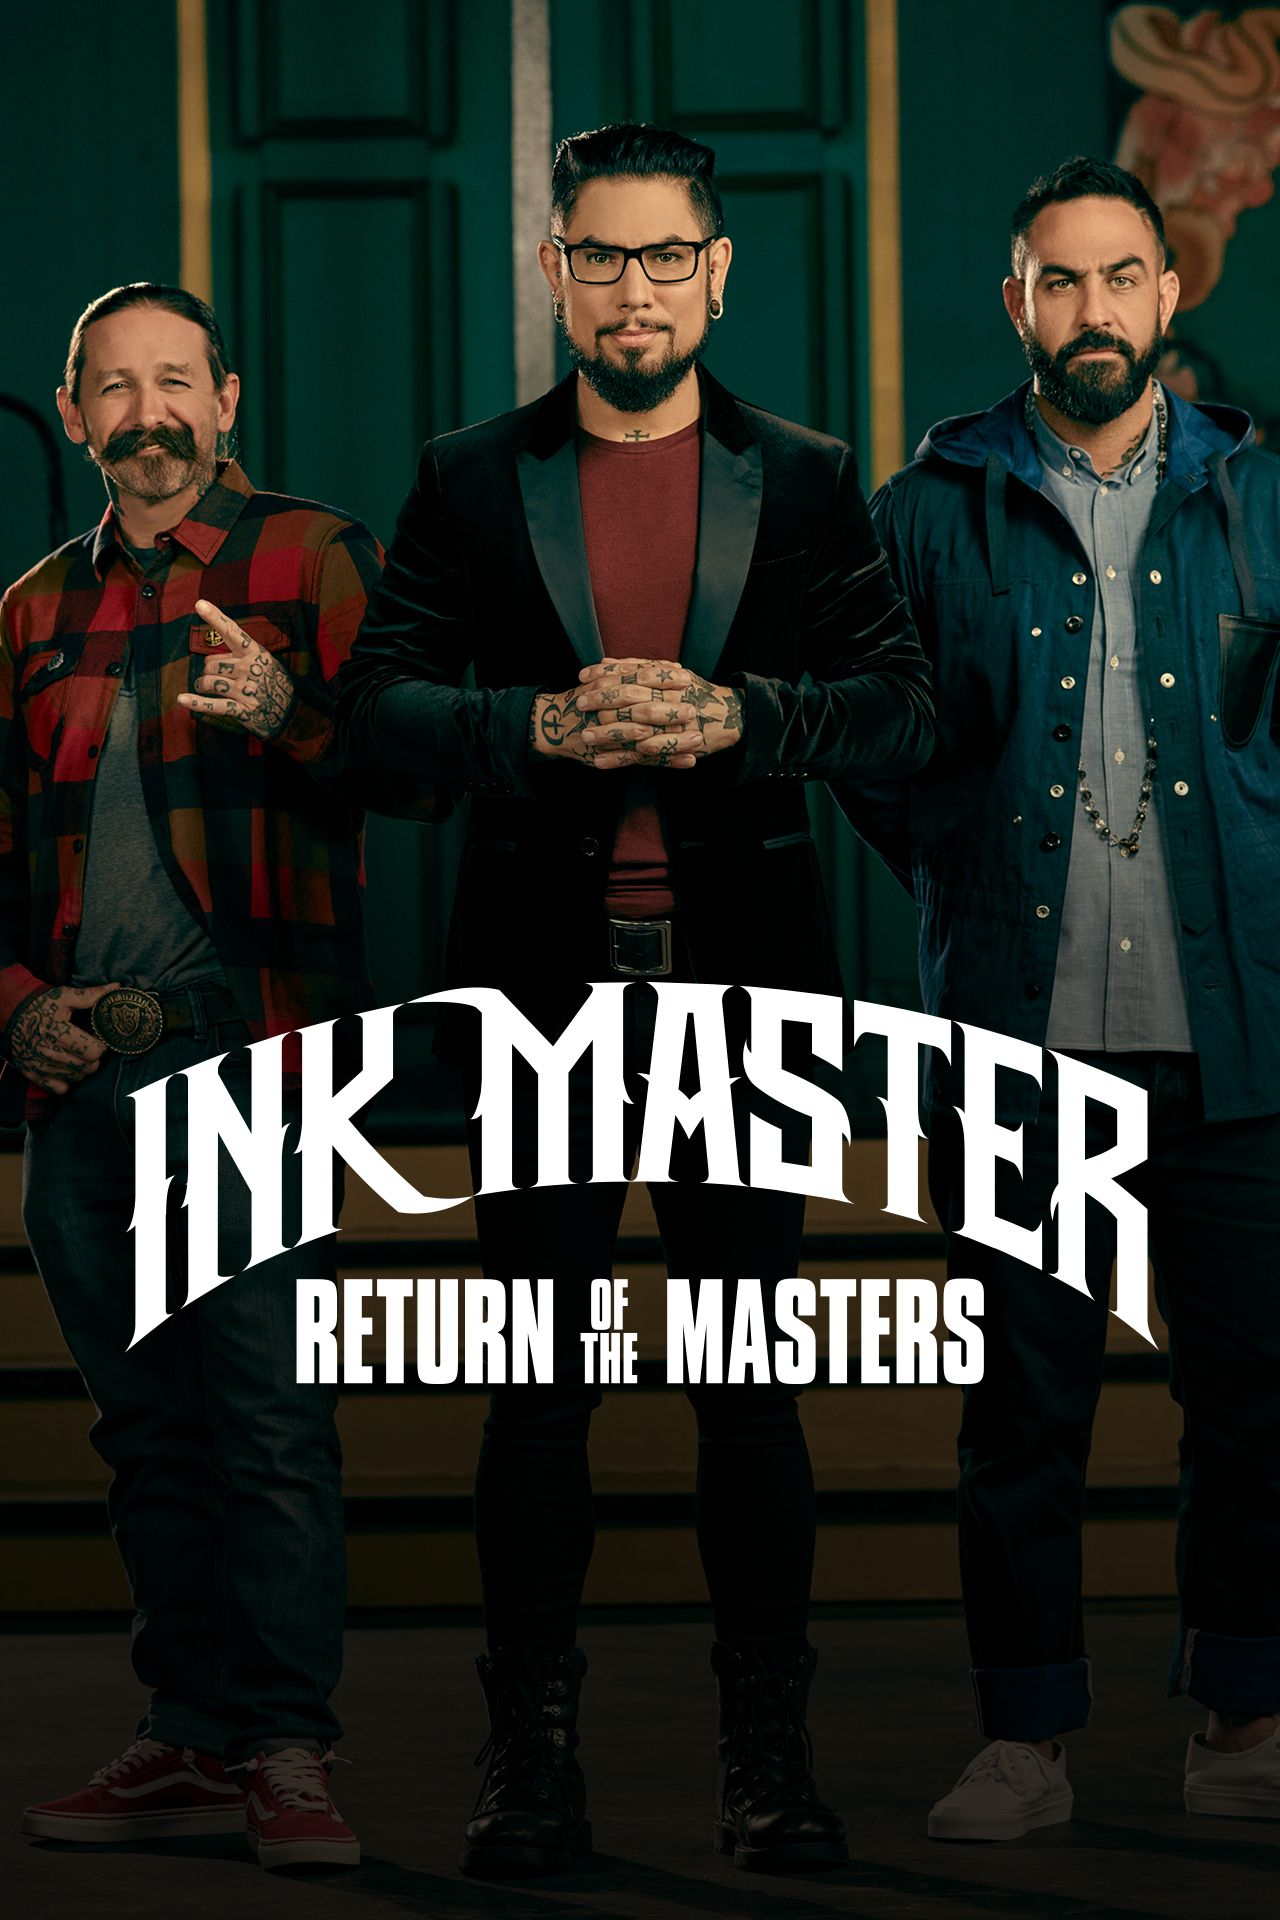 Three of the most skilled Ink Master winners return for a